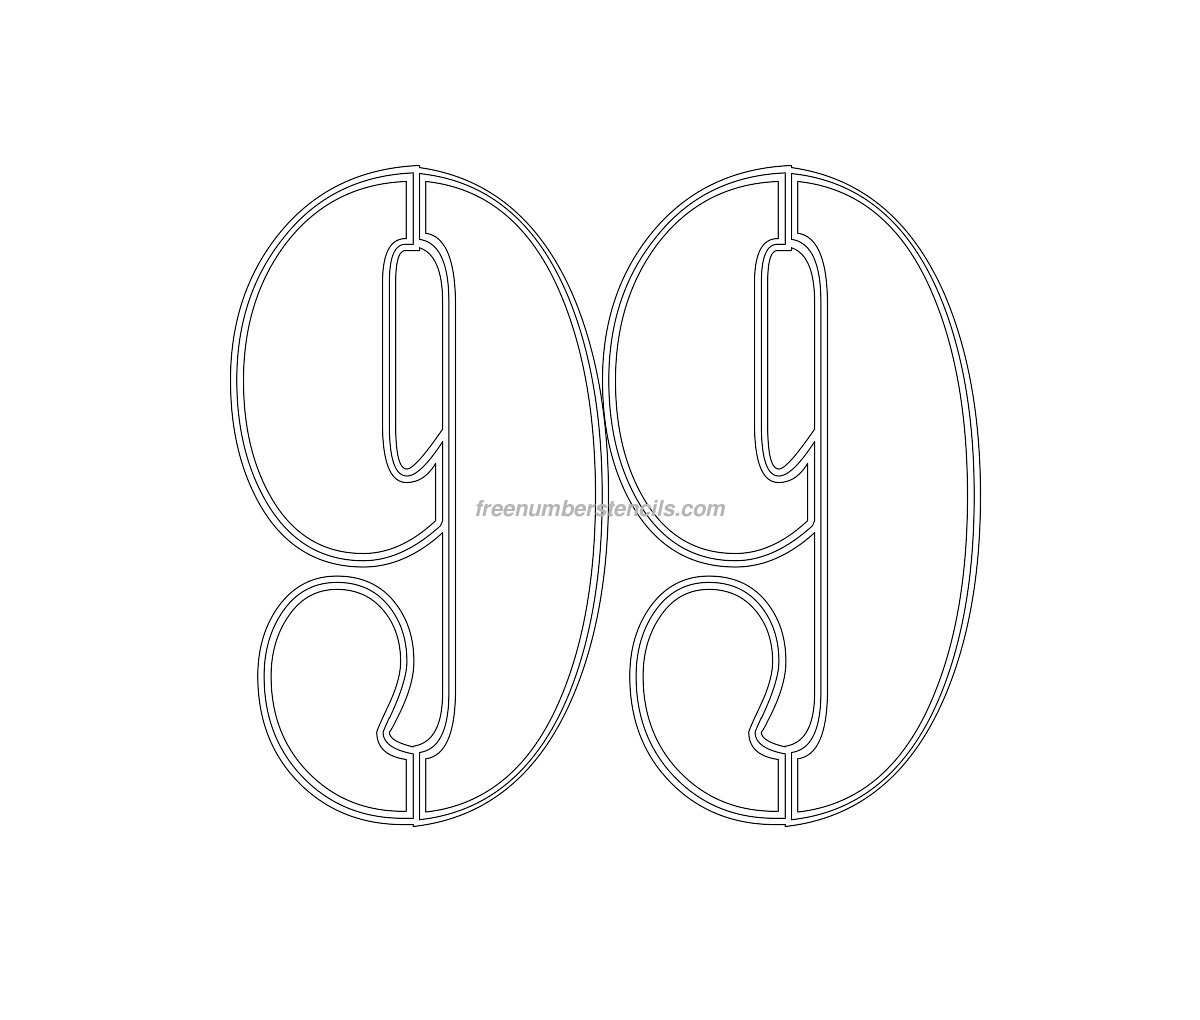 free military 99 number stencil